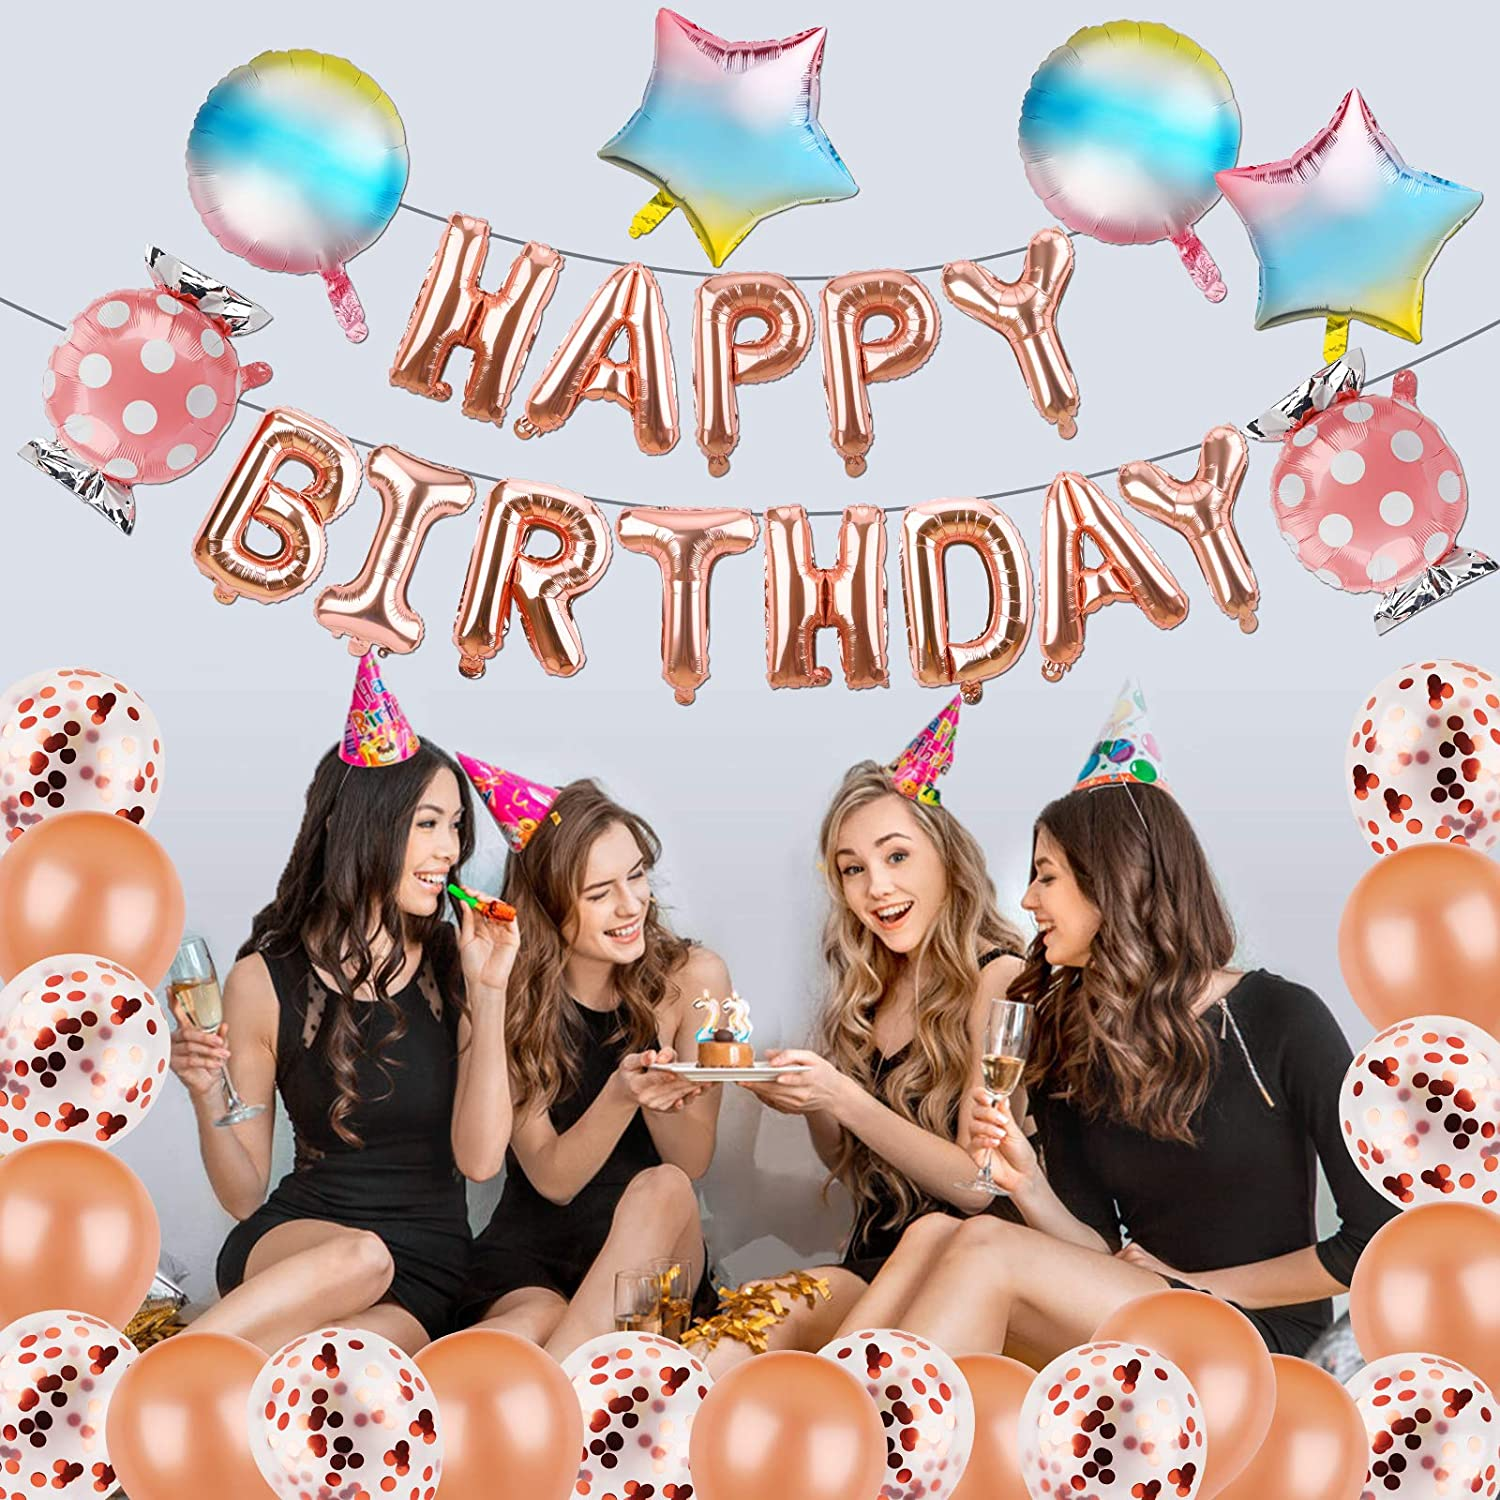 Rose Gold Birthday Party Decorations Supplies PAJAMA PARTY Rose Gold Ladies Night Out Rainbow Party Decorations Candy Star Foil Confetti Balloons for 14th 16th All Ages Birthday Girls Women Her PHXEY